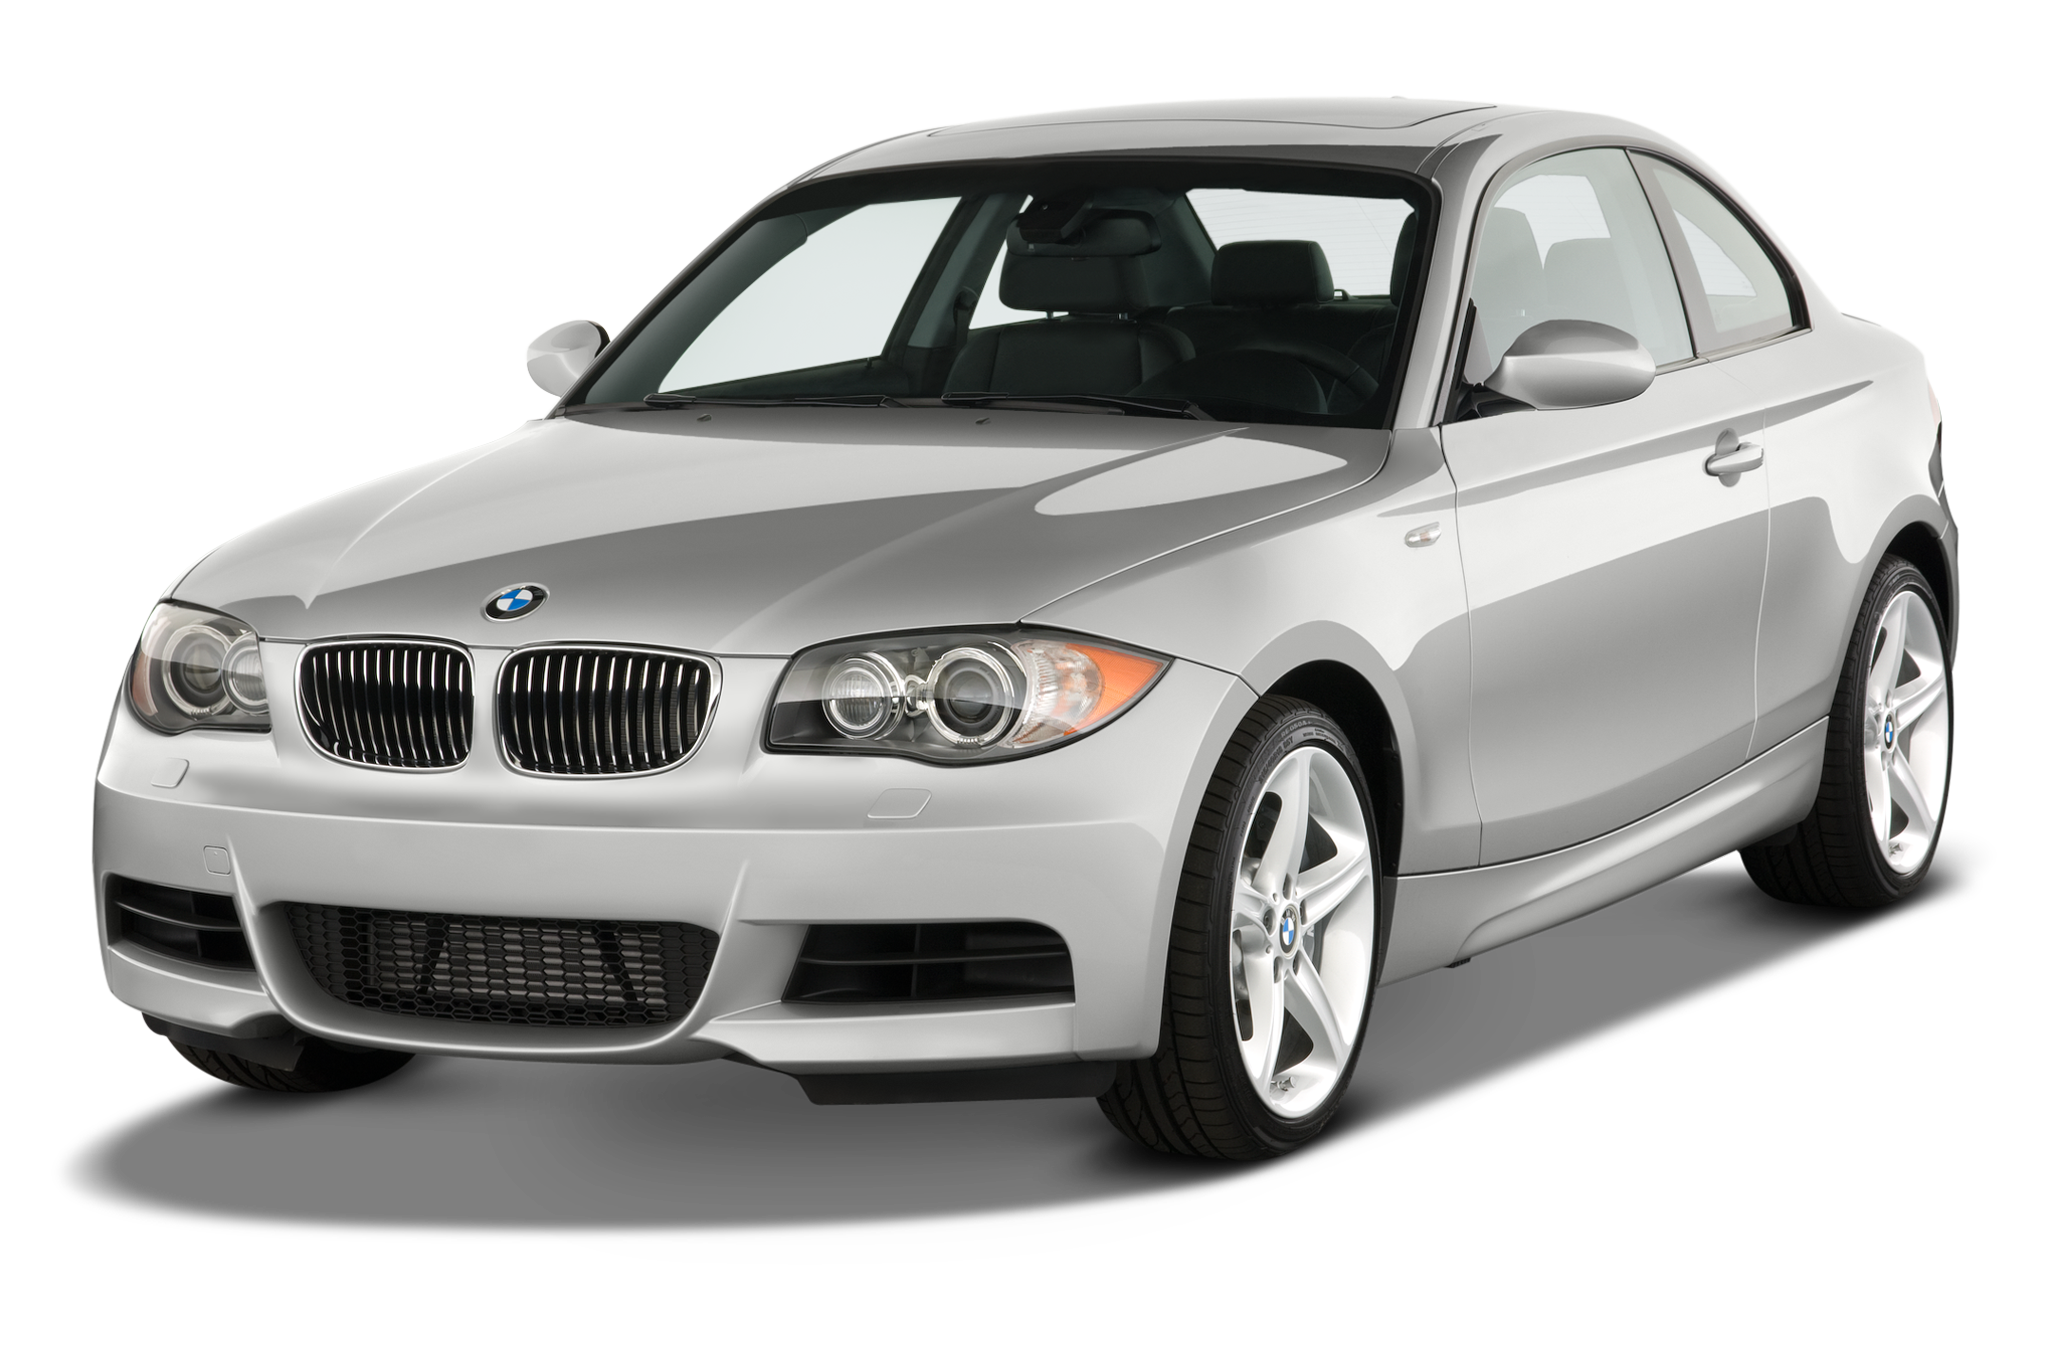 2010 BMW 135i Coupe - Editor\'s Notebook - Automobile Magazine